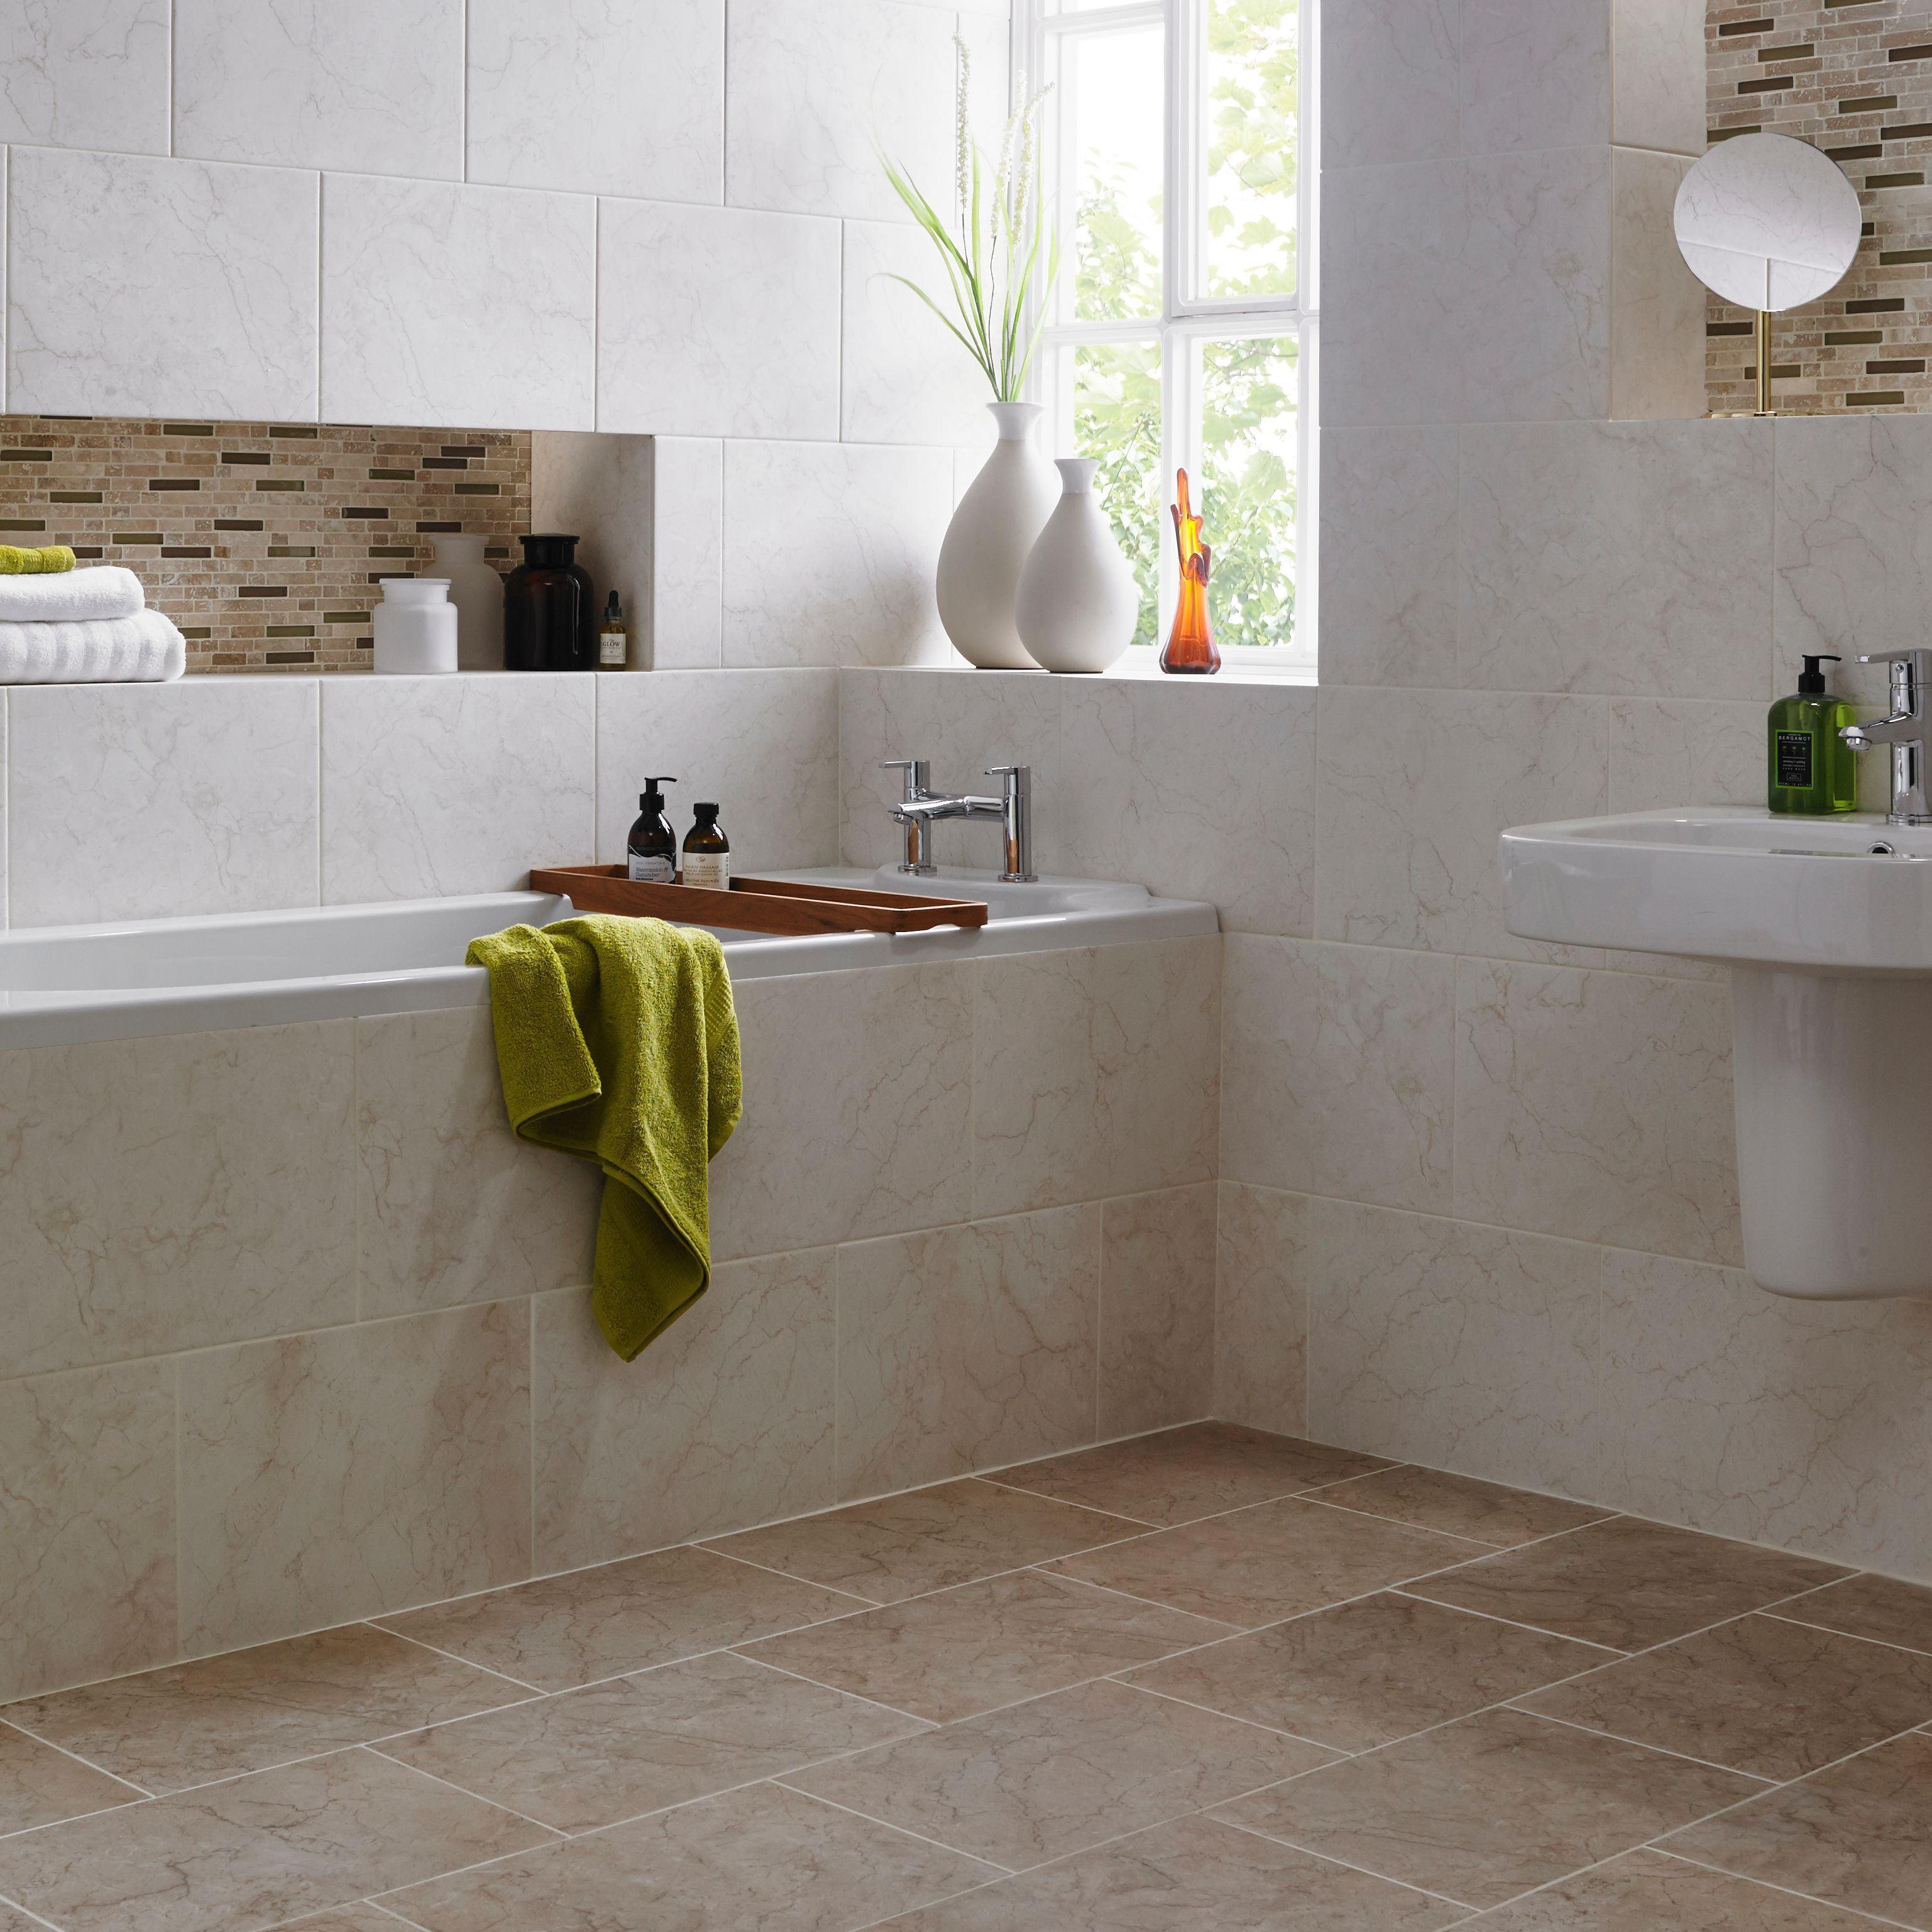 Gallery Picture Of B And Q Tiles